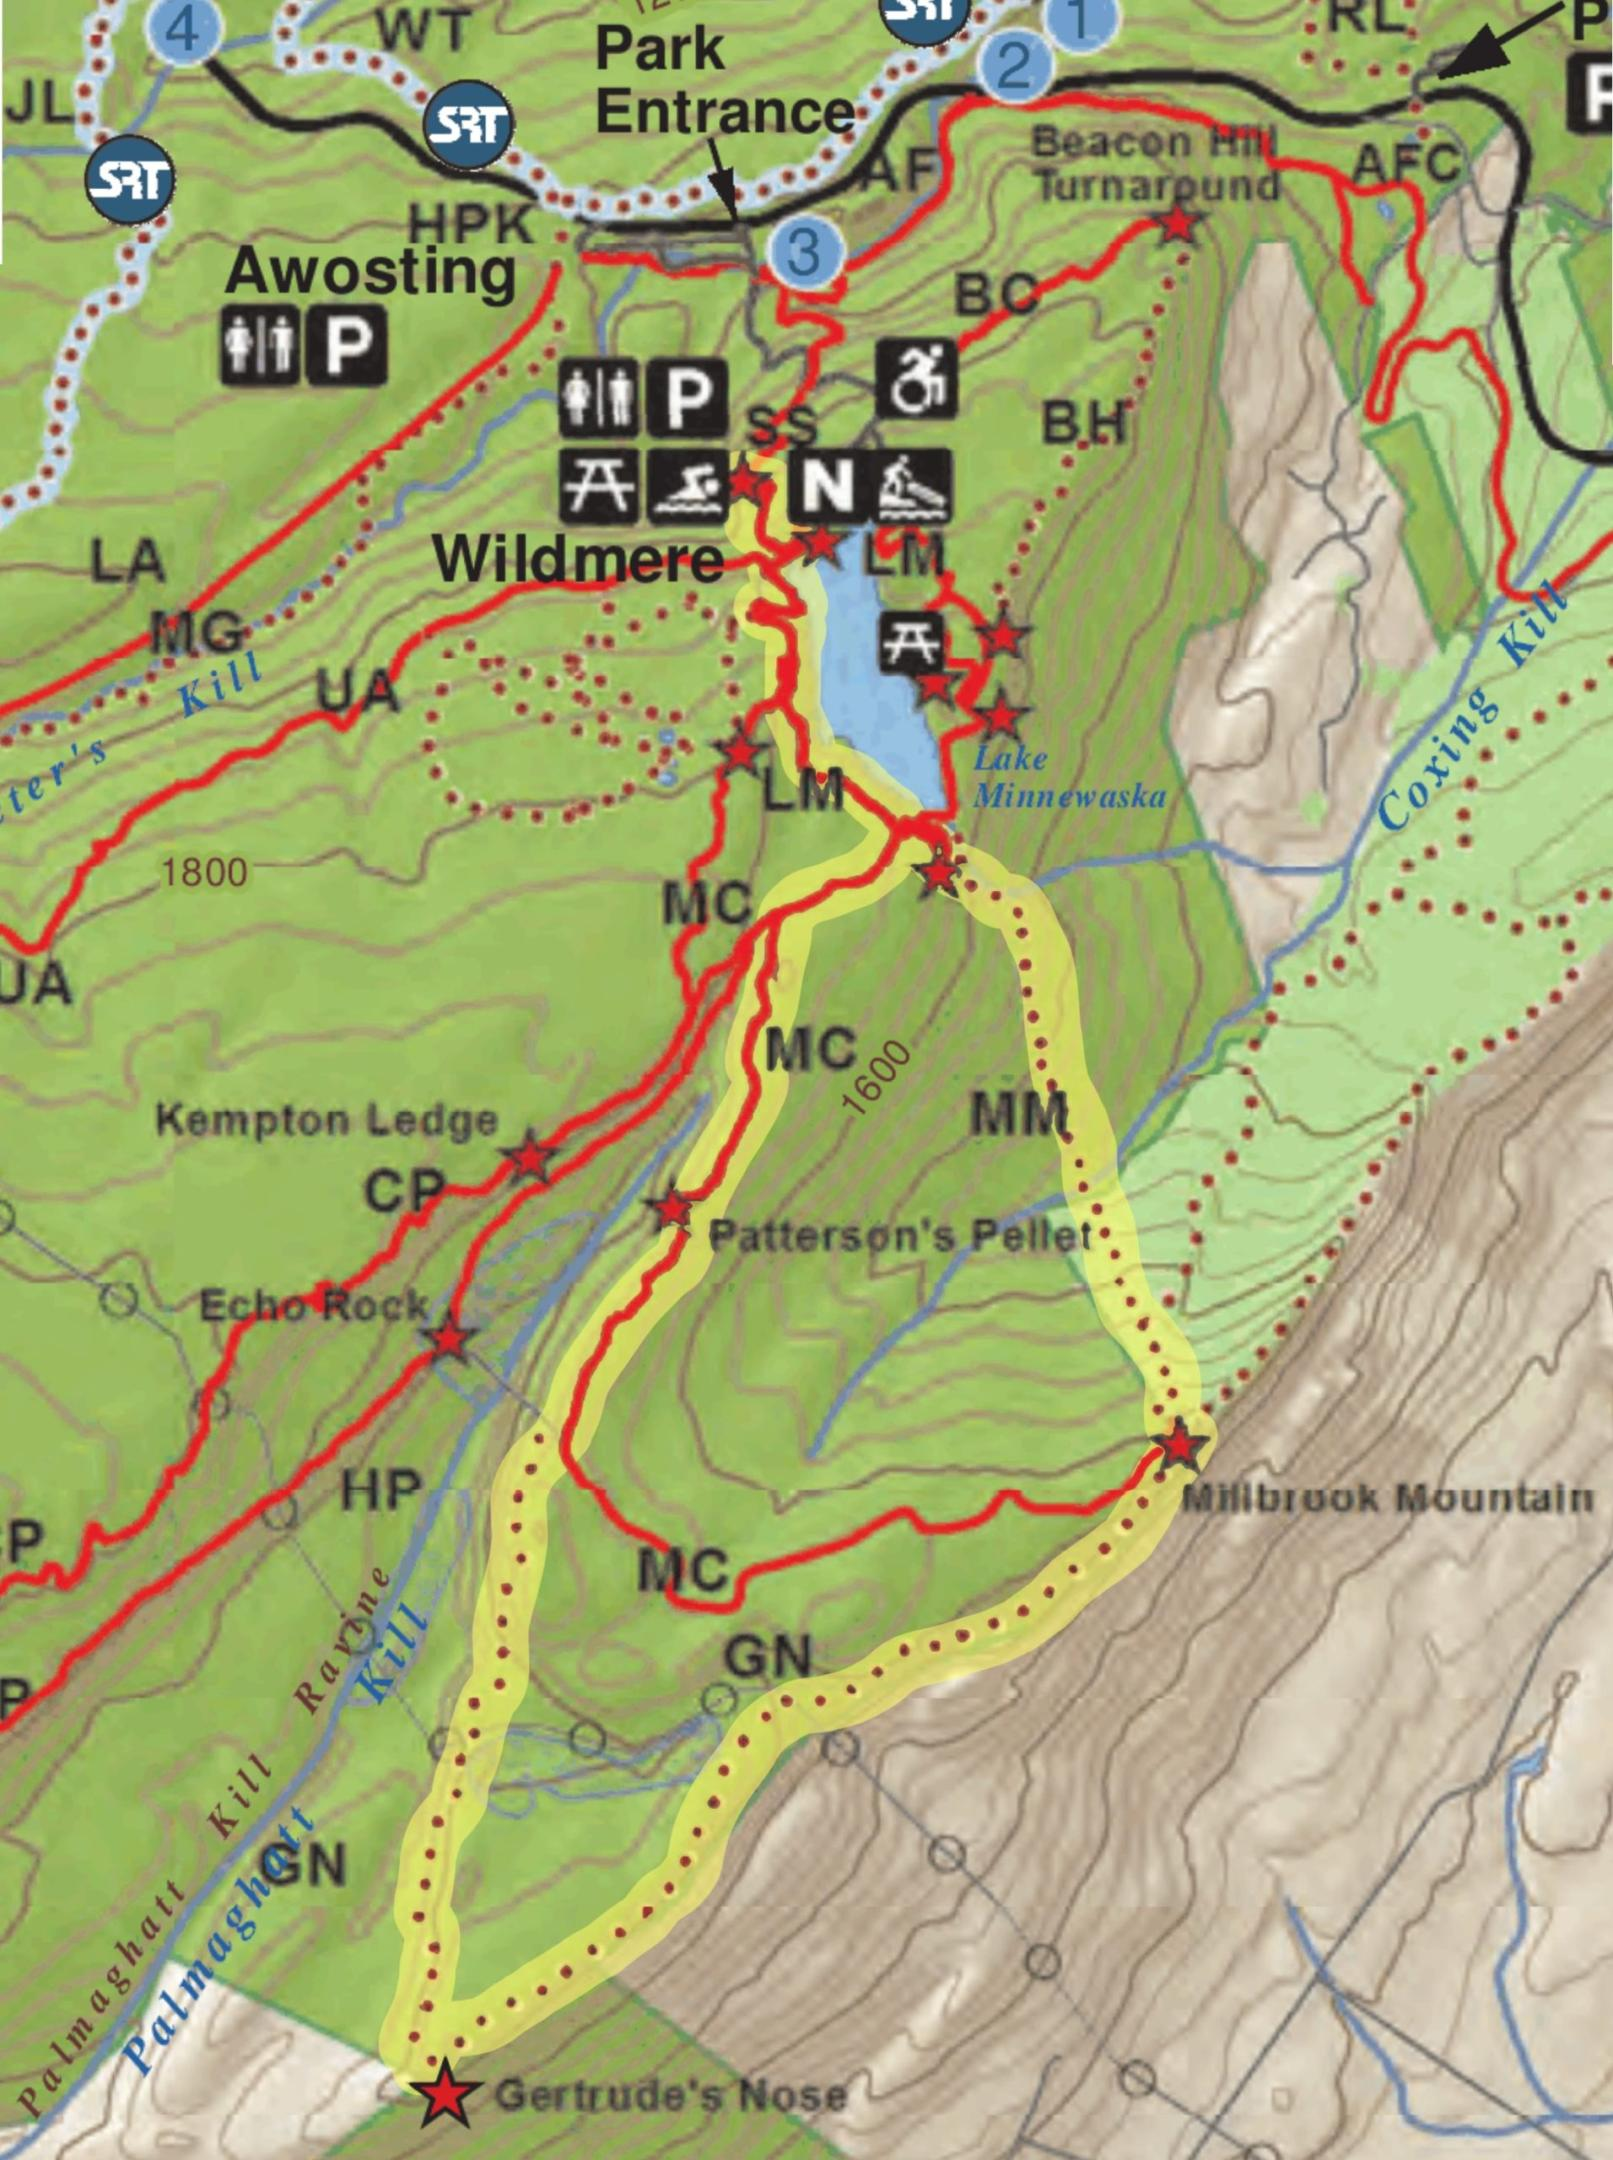 Gertrude's Nose trail map